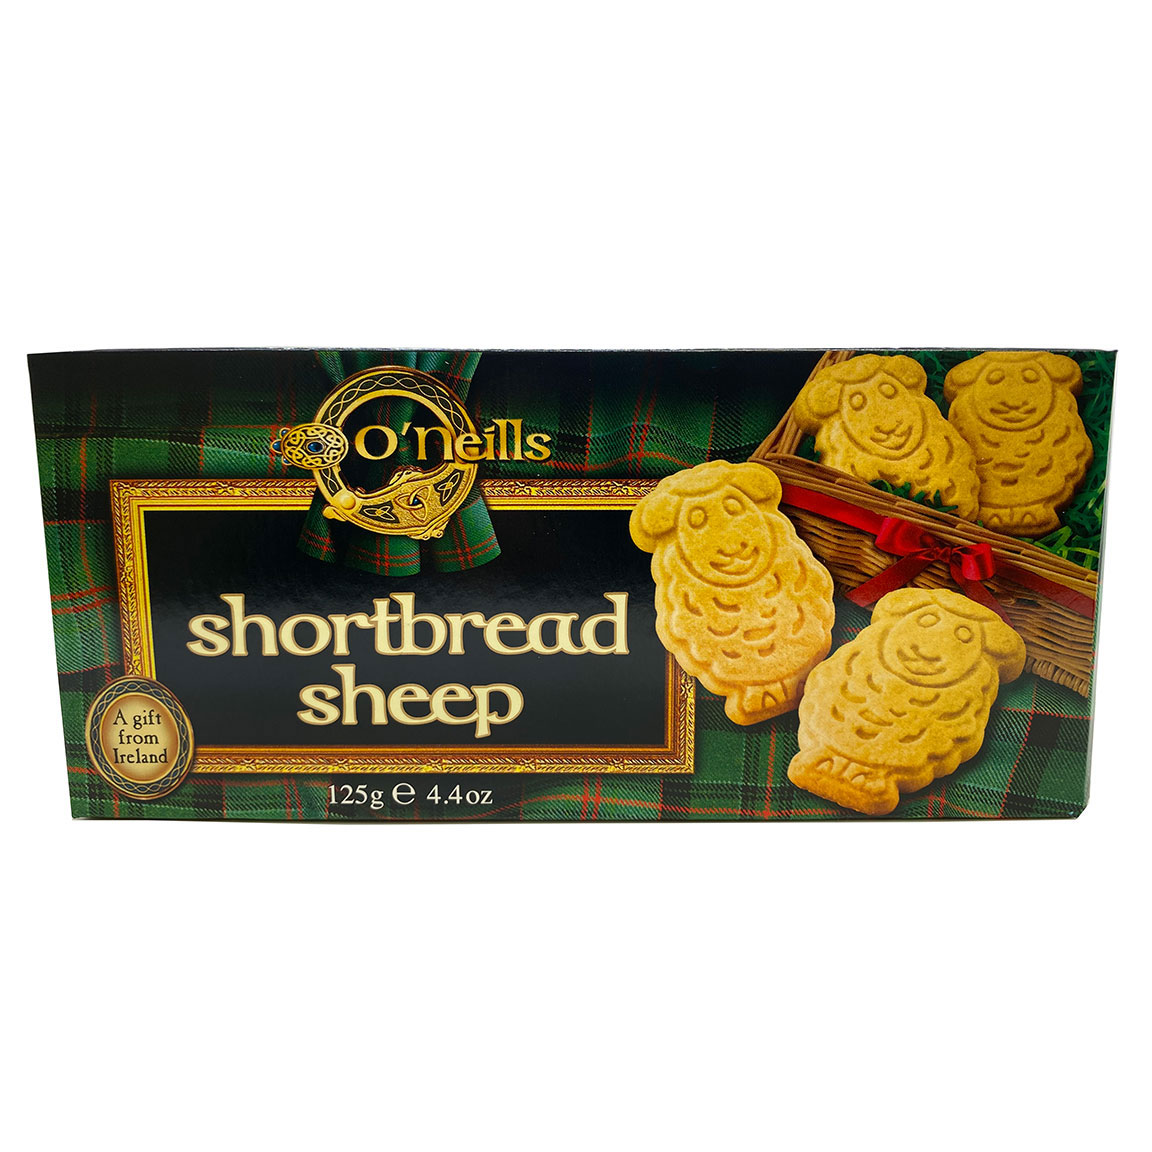 O'Neills Shortbread Sheep